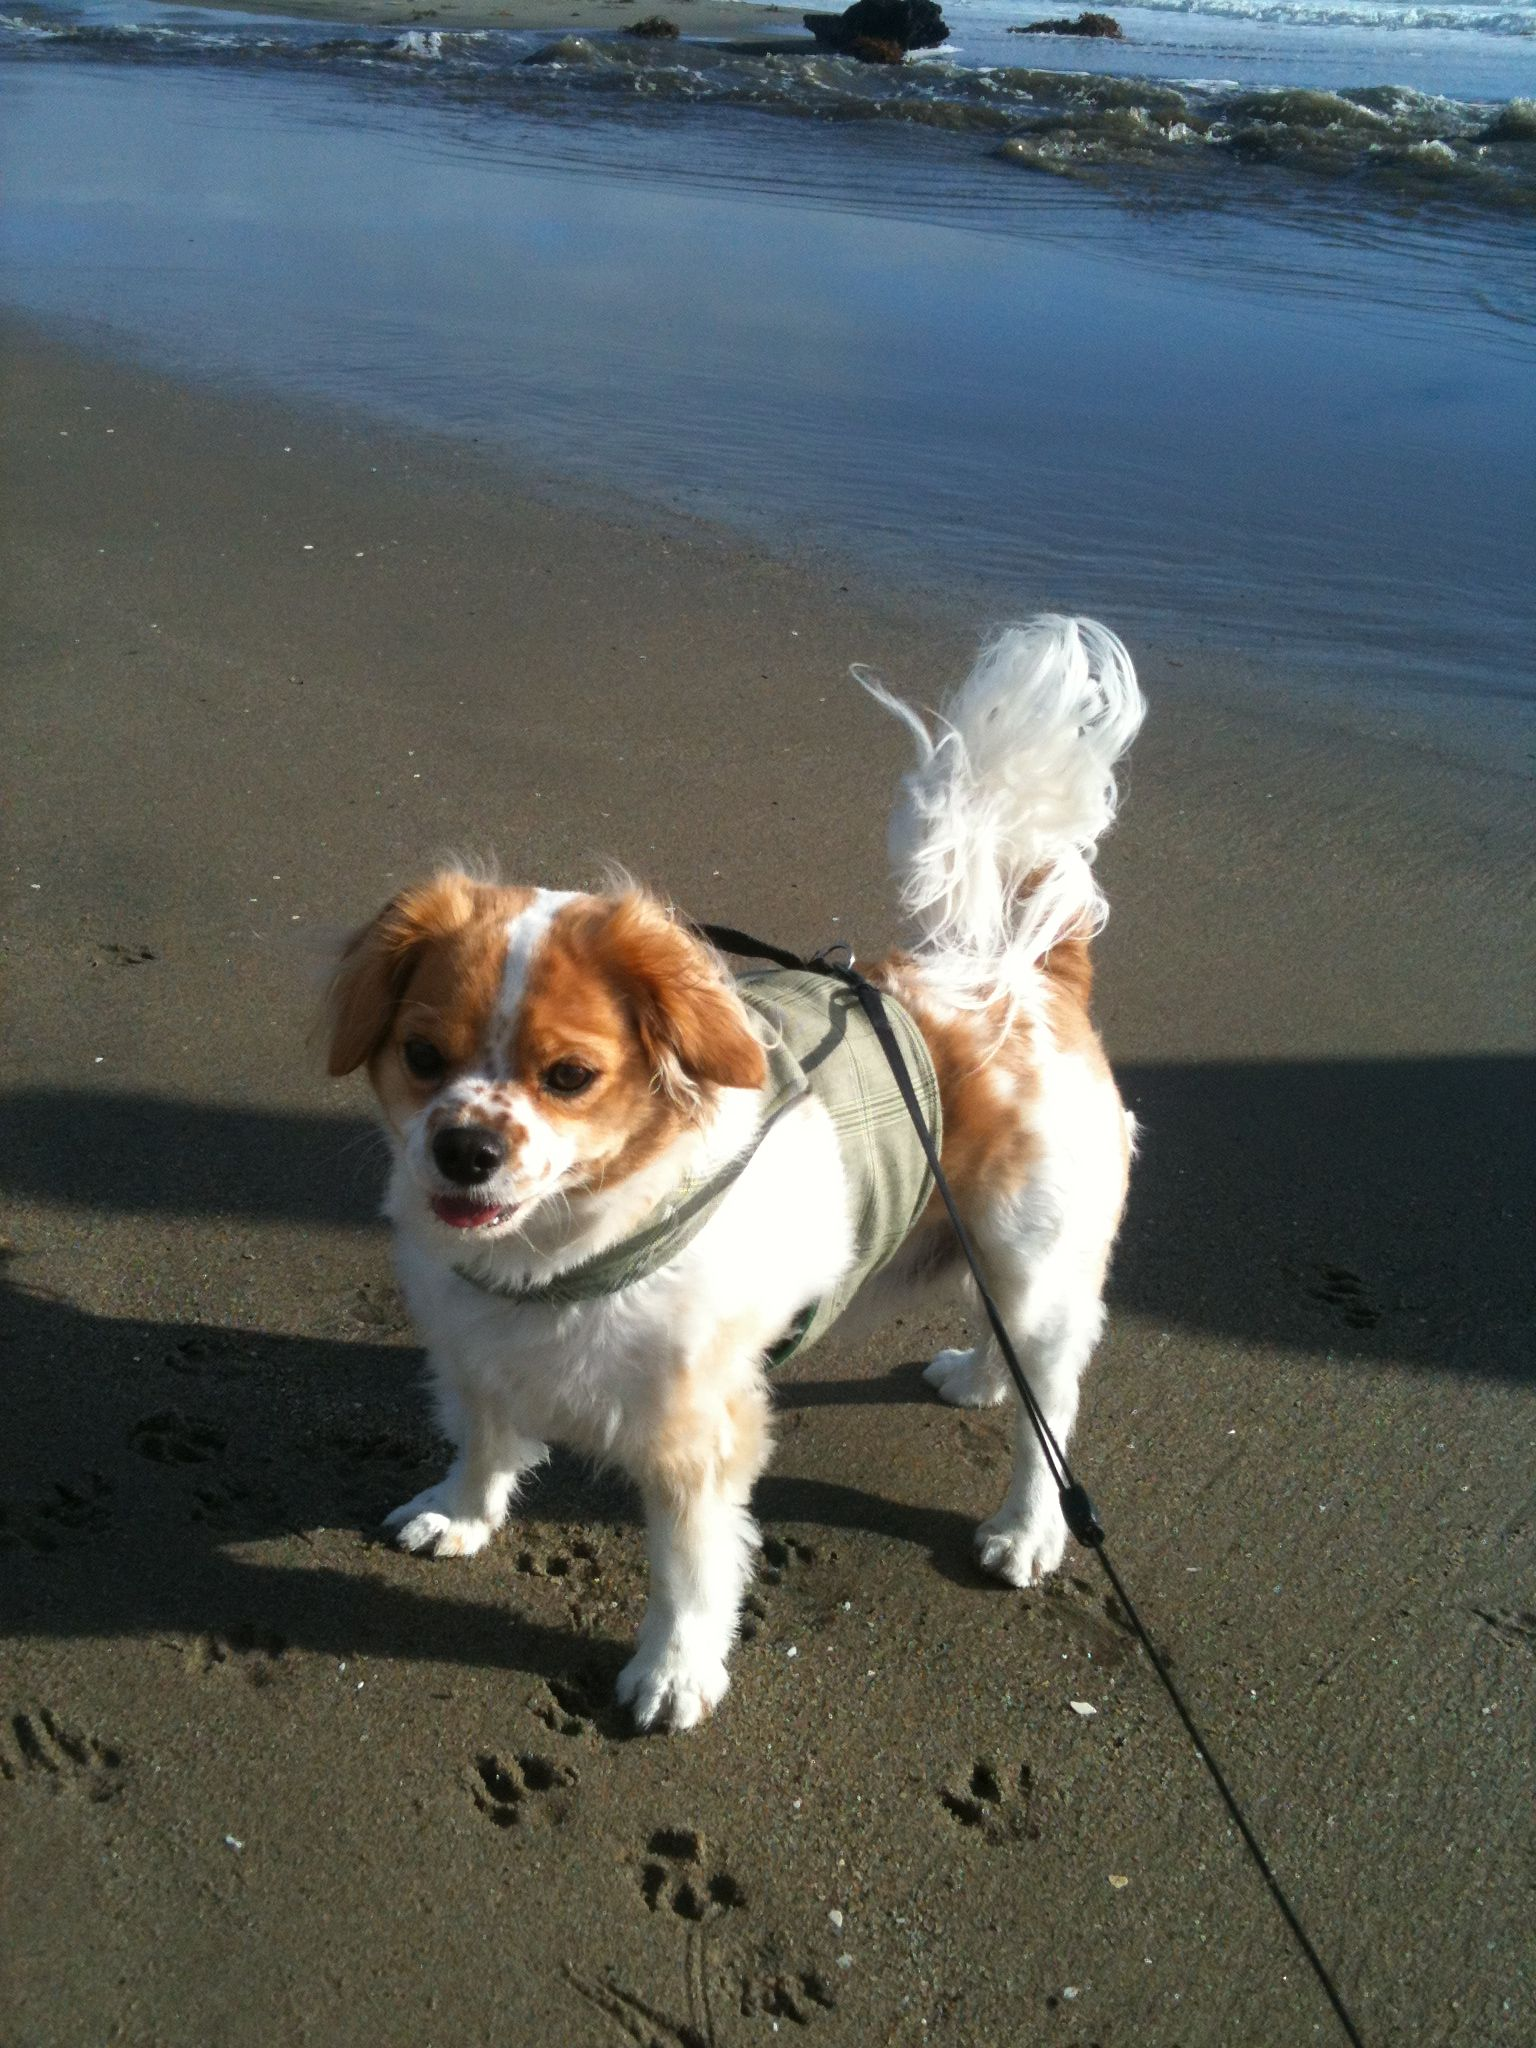 Zeppy after a wild seagull chase on the beach.